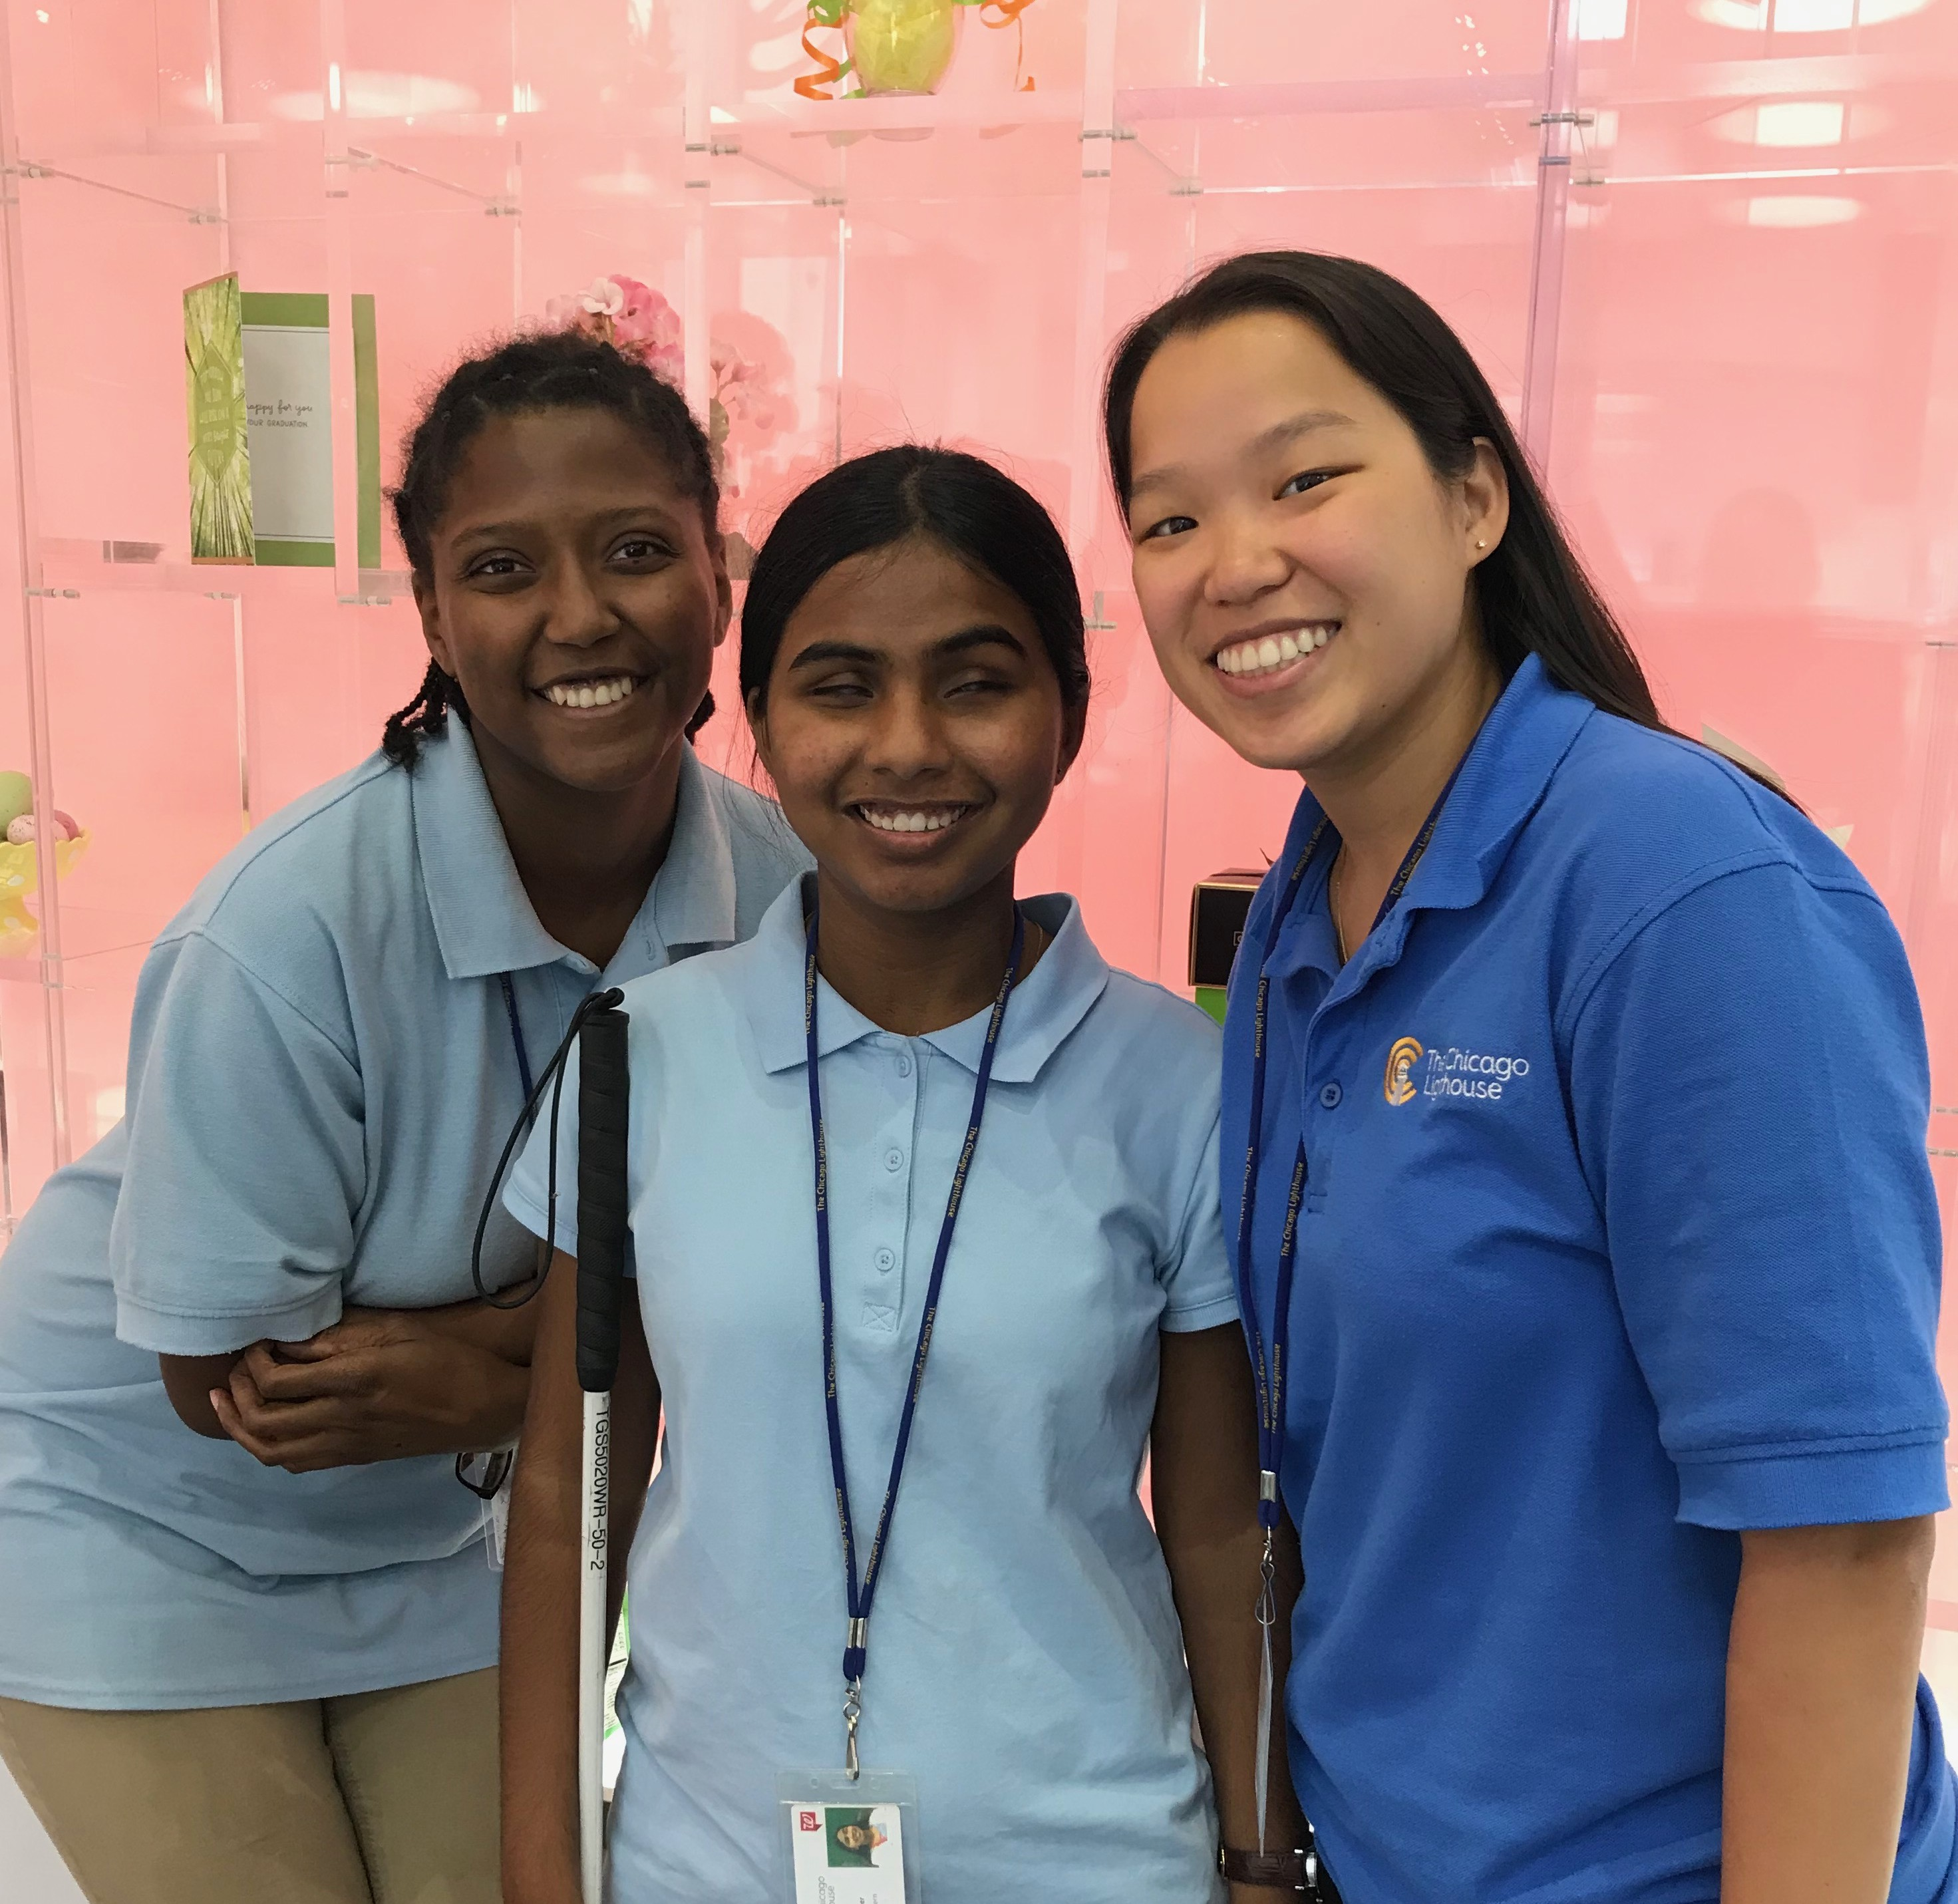 Rupa with Walgreens coworkers